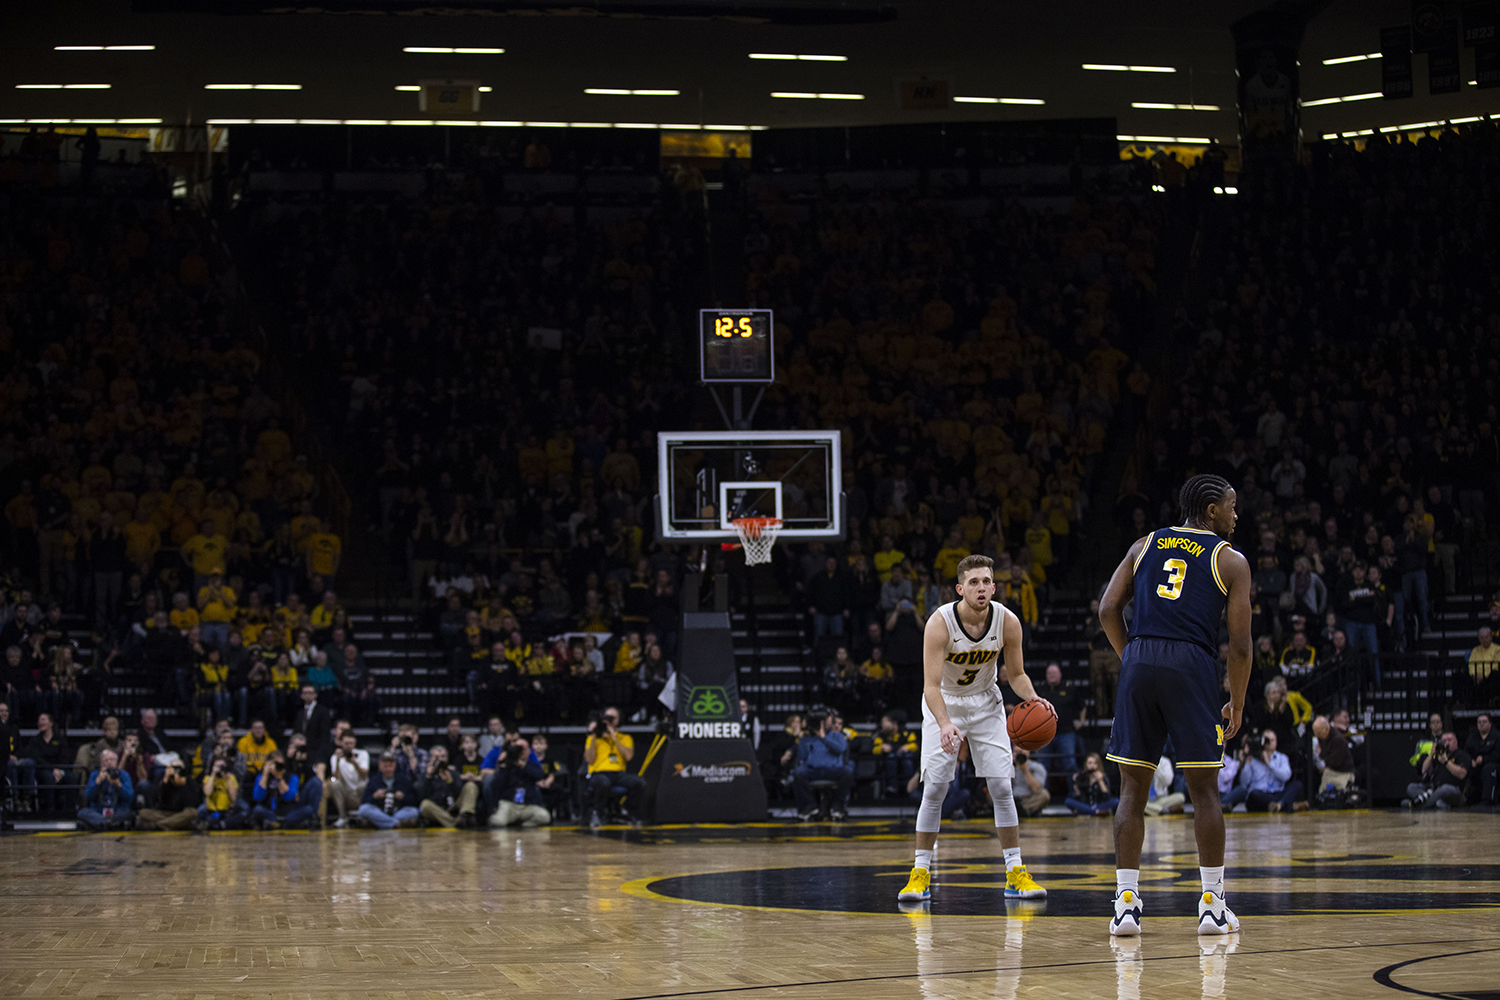 Iowa+guard+Jordan+Bohannon+runs+down+the+clock+at+the+end+of+the+first+half+during+the+Iowa%2FMichigan+men%27s+basketball+game+at+Carver-Hawkeye+Arena+on+Friday%2C+February+1%2C+2019.+The+Hawkeyes+took+down+the+No.+5+ranked+Wolverines%2C+74-59.+